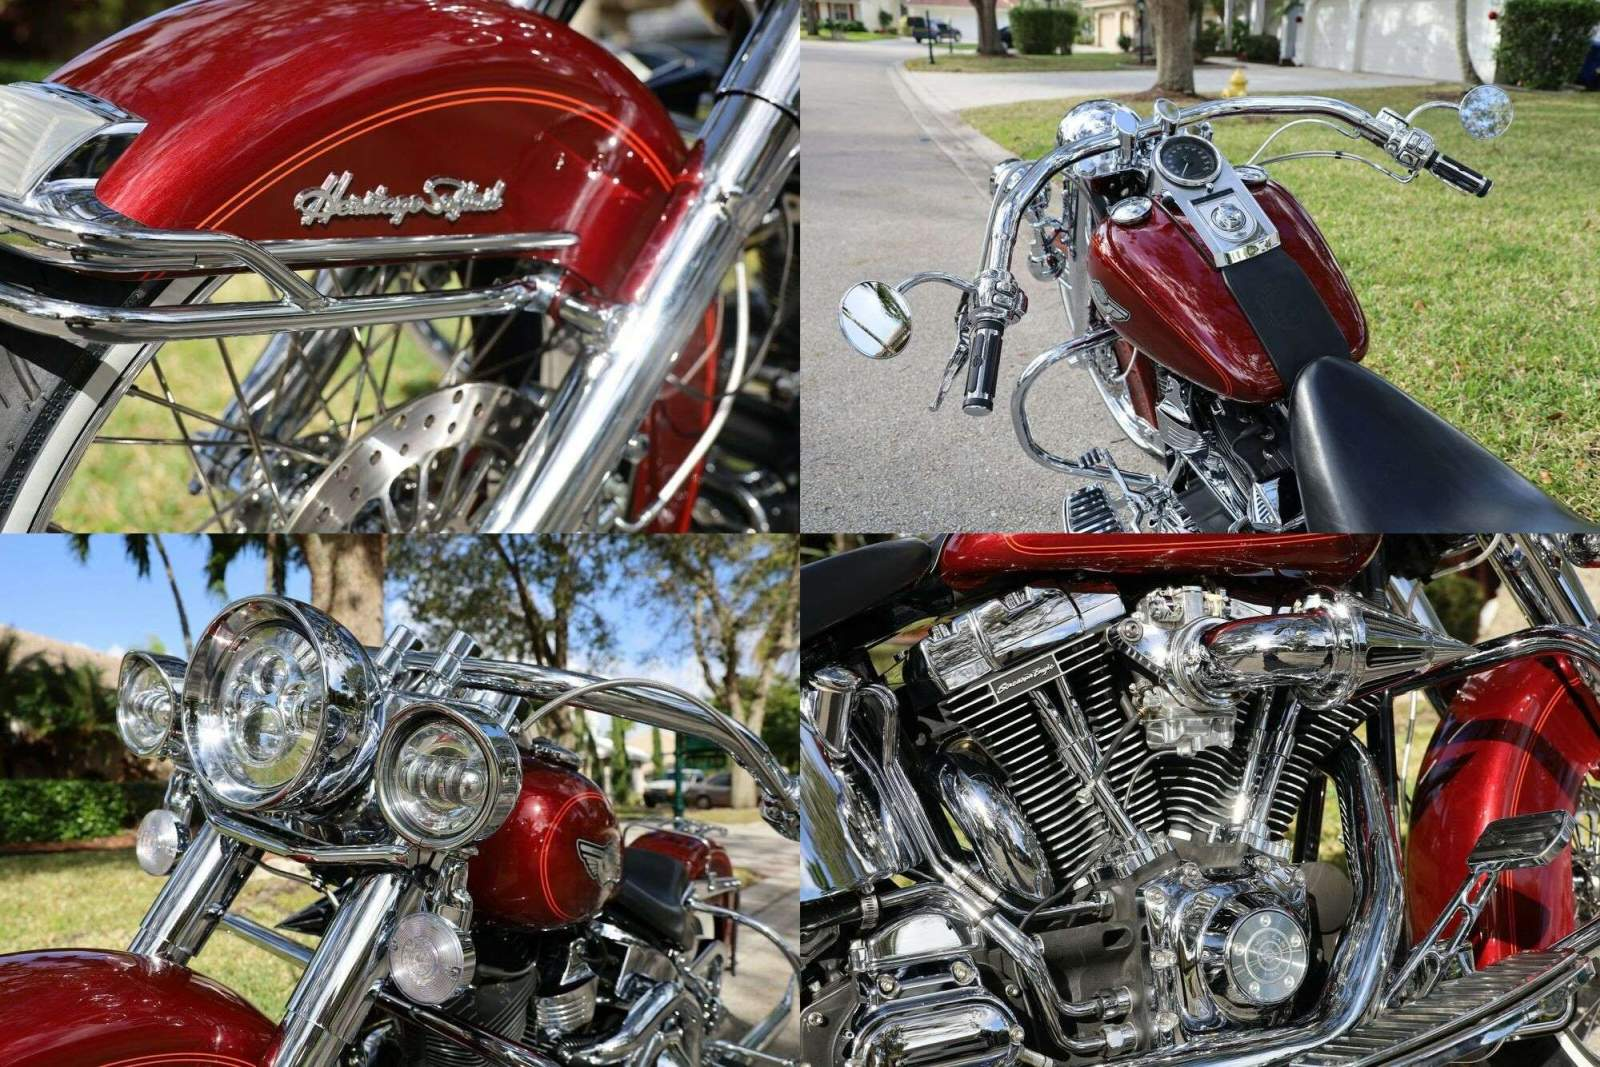 2003 Harley-Davidson Softail Red used for sale